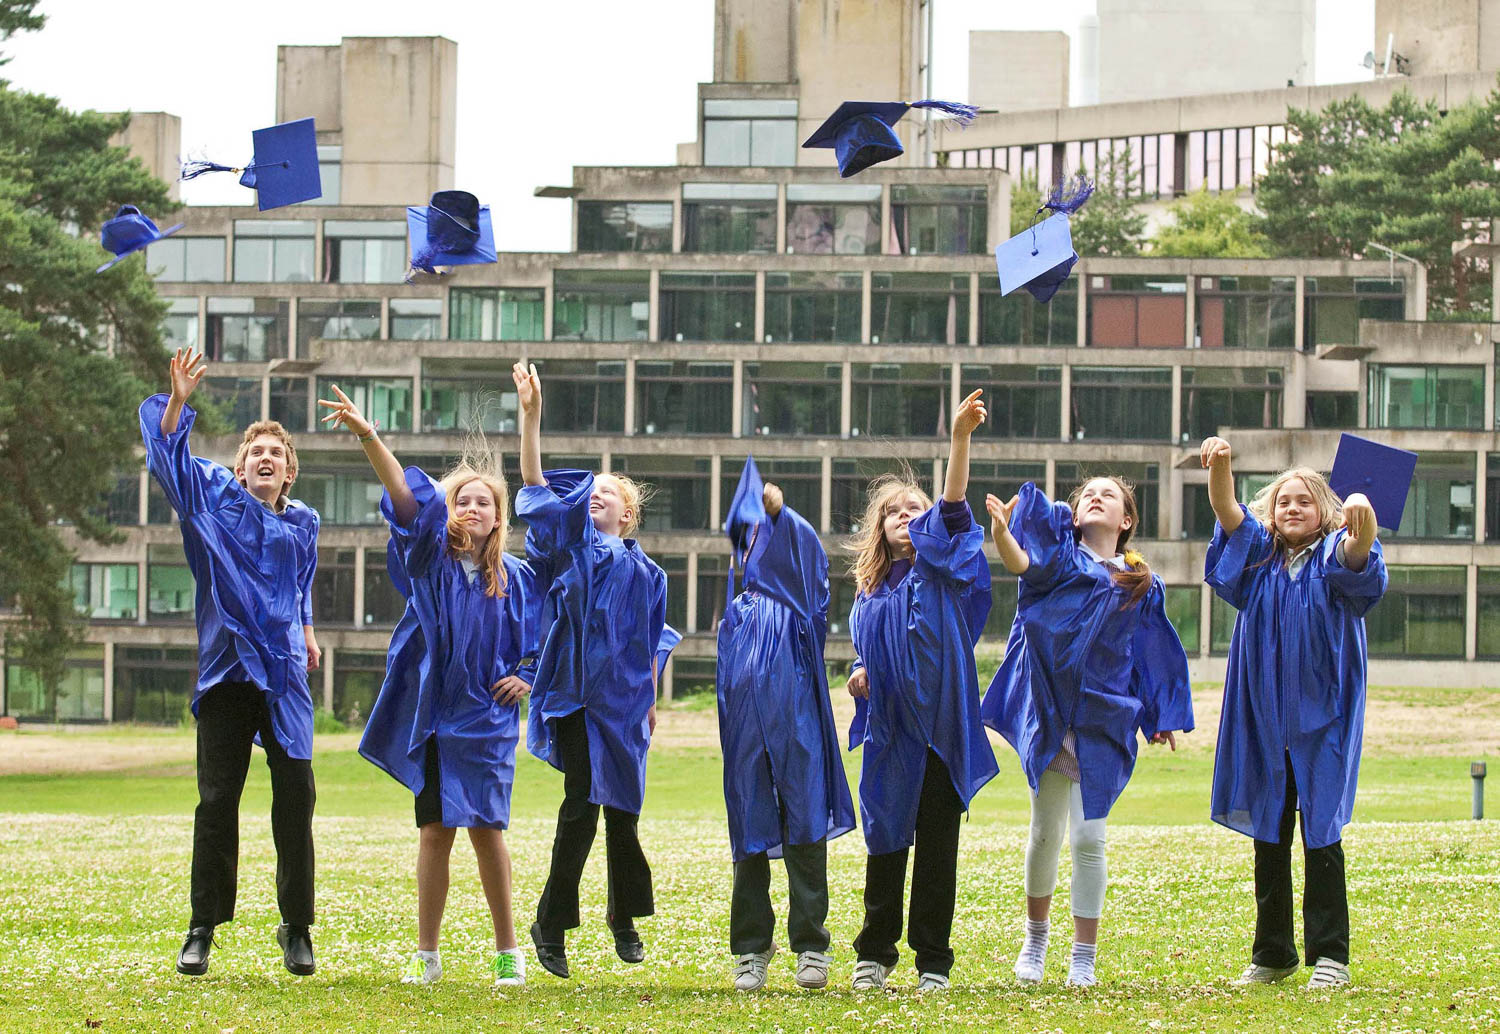 School children graduate and throw up their hats